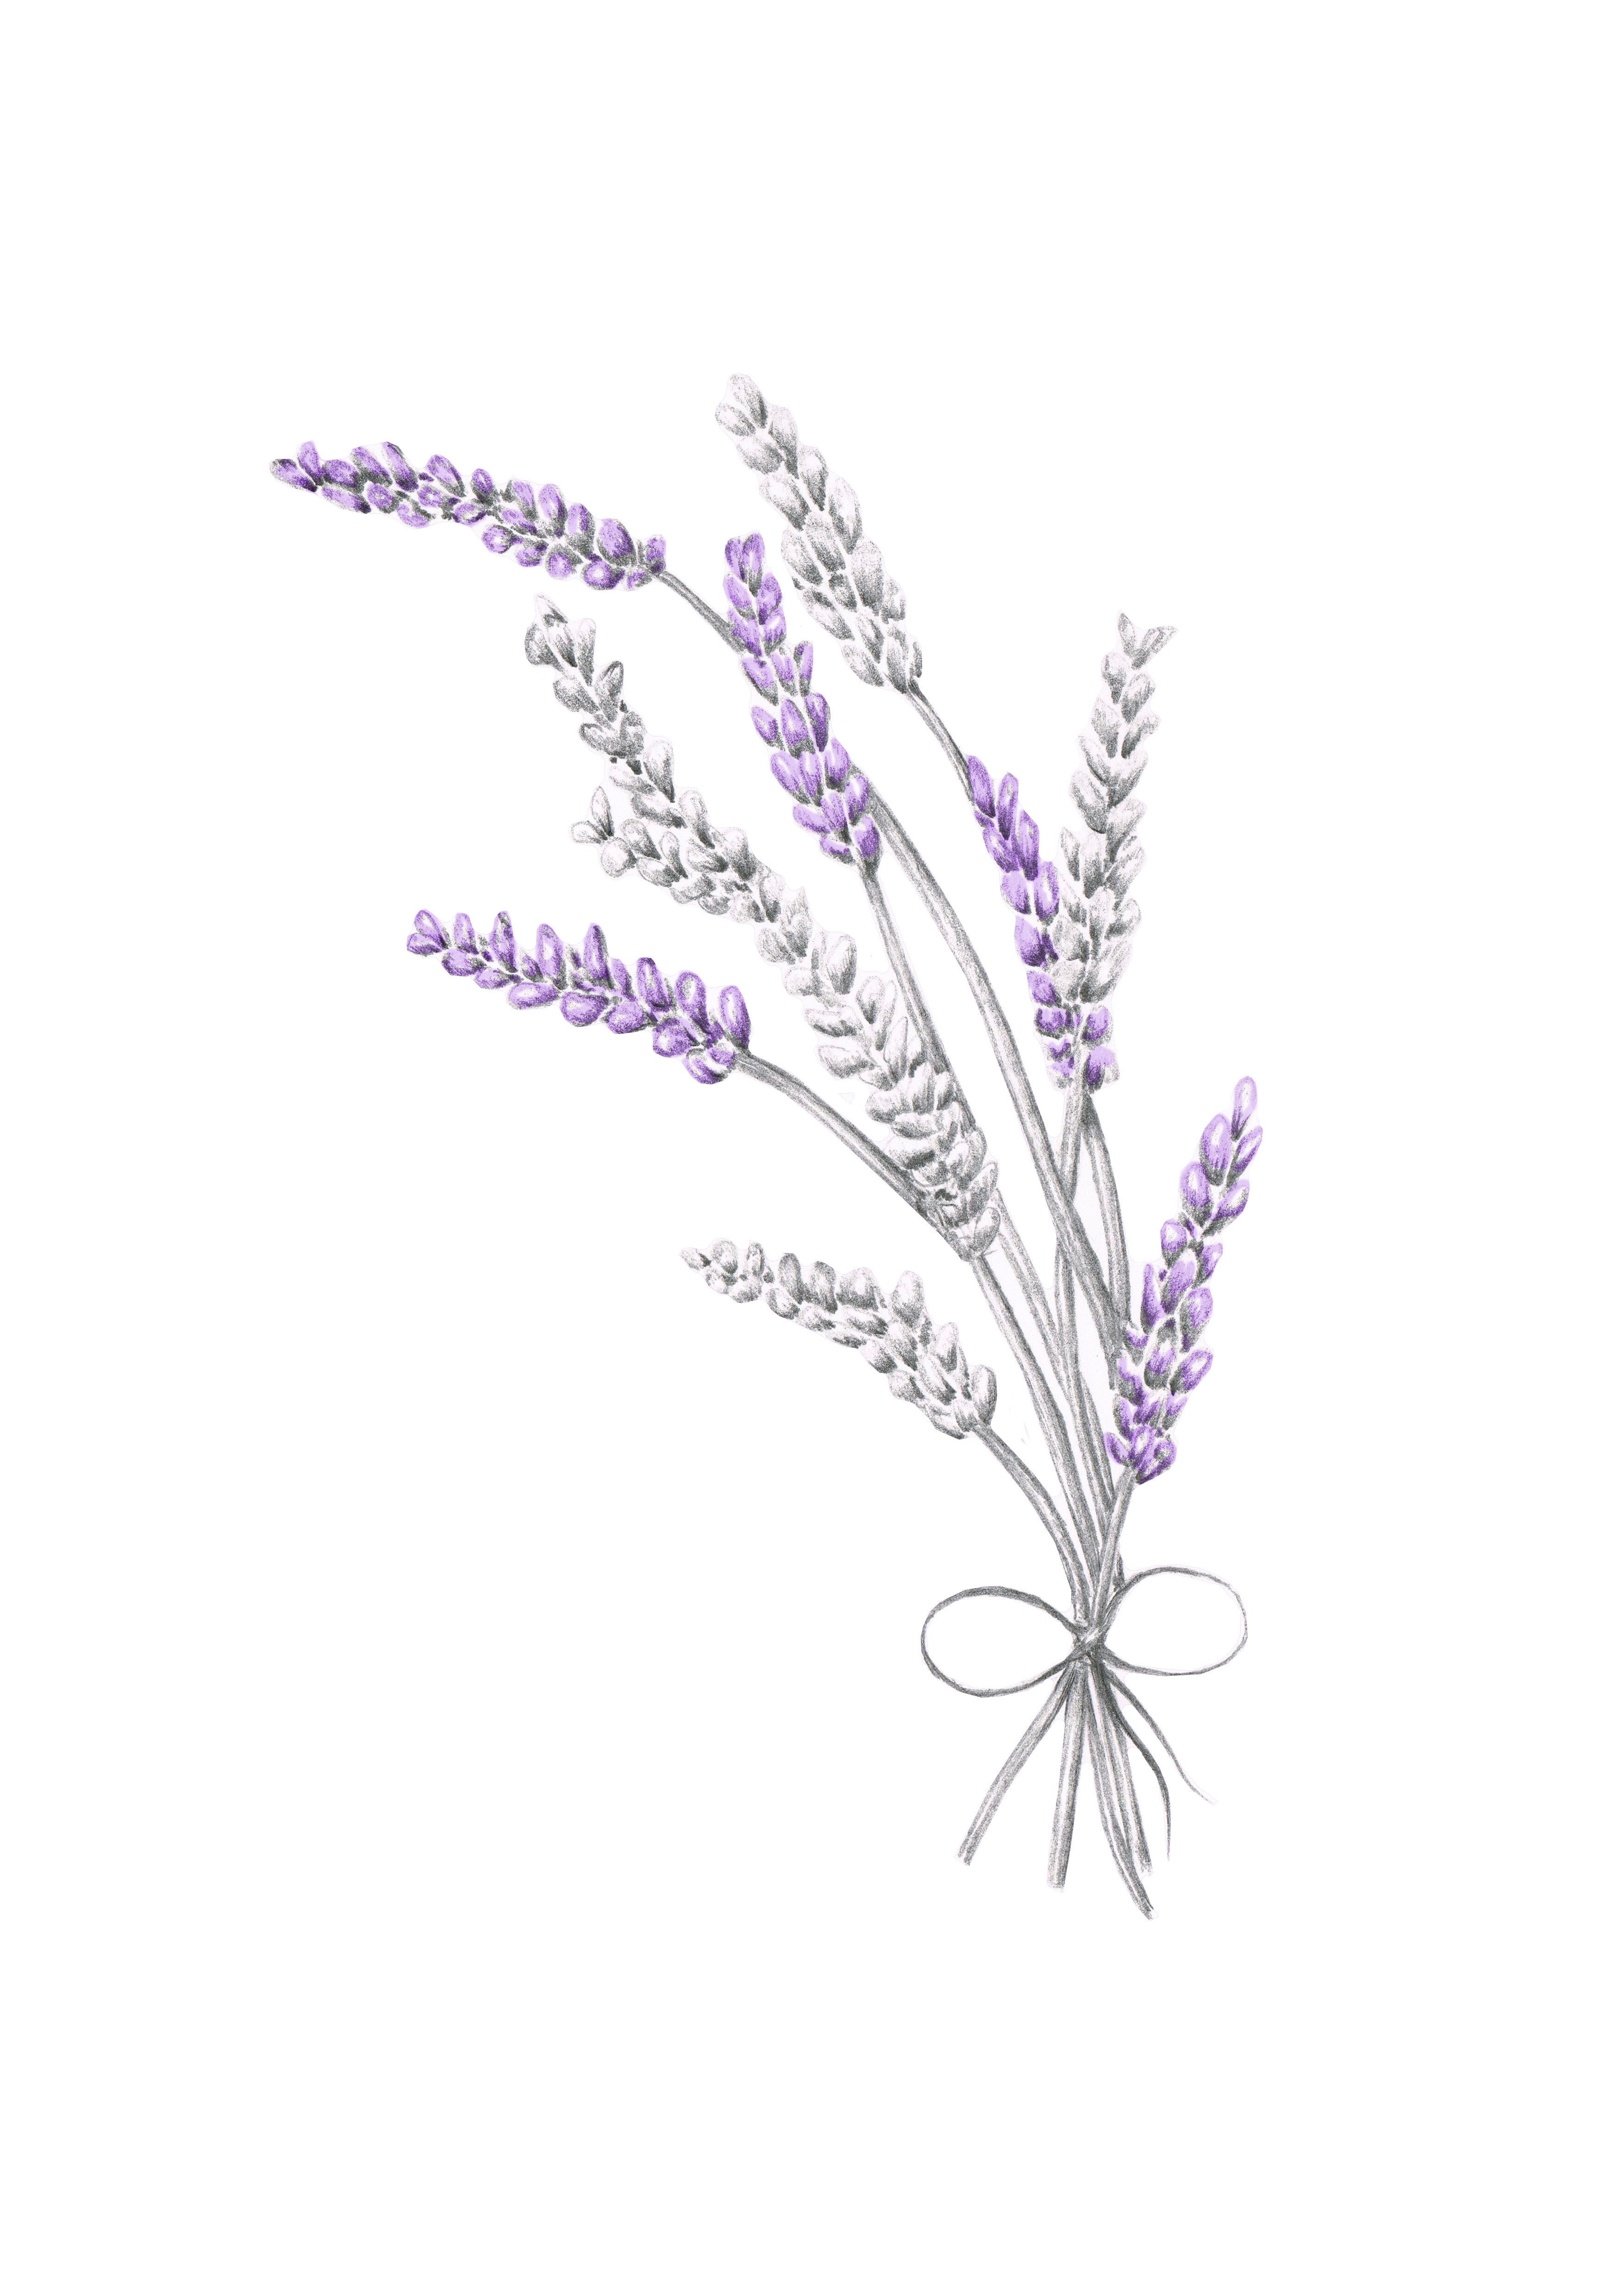 Line Drawing Lavender : The gallery for gt lavender line drawing